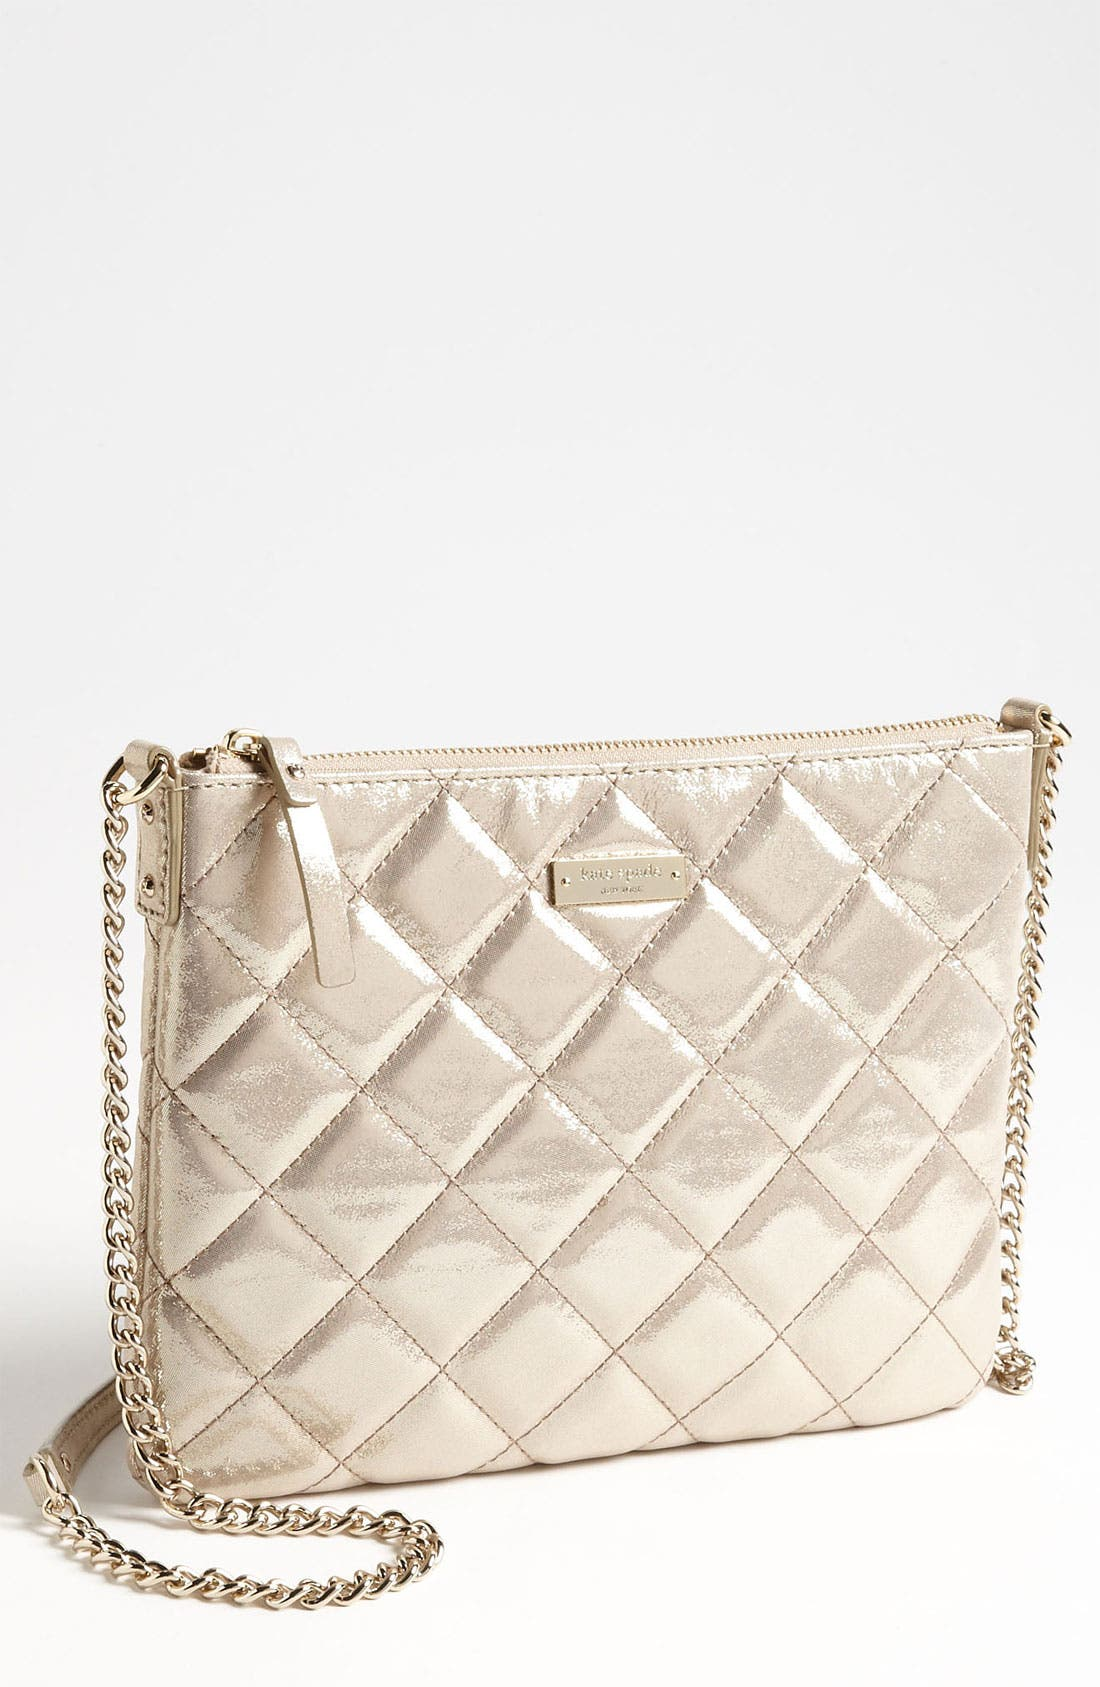 Alternate Image 1 Selected - kate spade new york 'gold coast - ginnie' crossbody bag